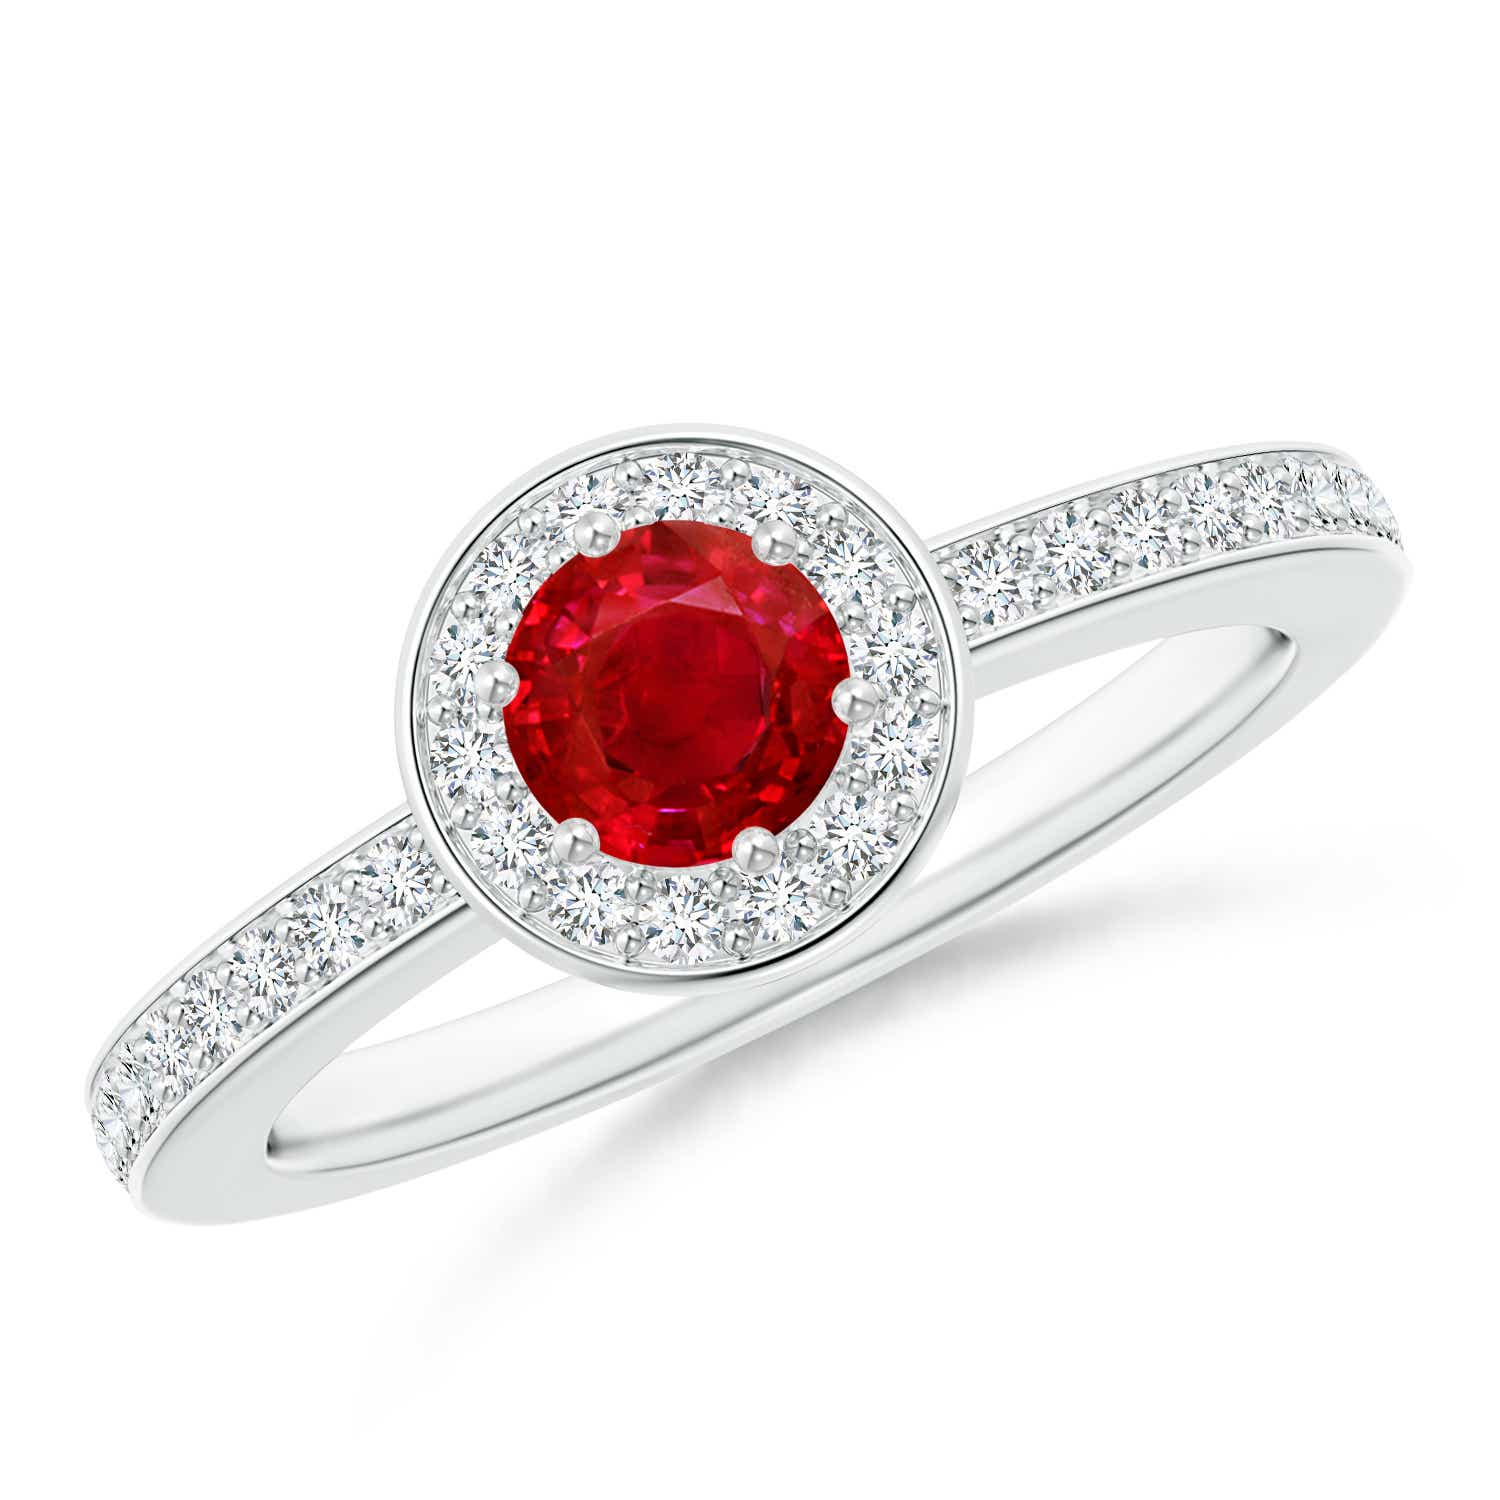 Angara Ruby Halo Ring With Diamond Border in White Gold bdLNT9KOSi